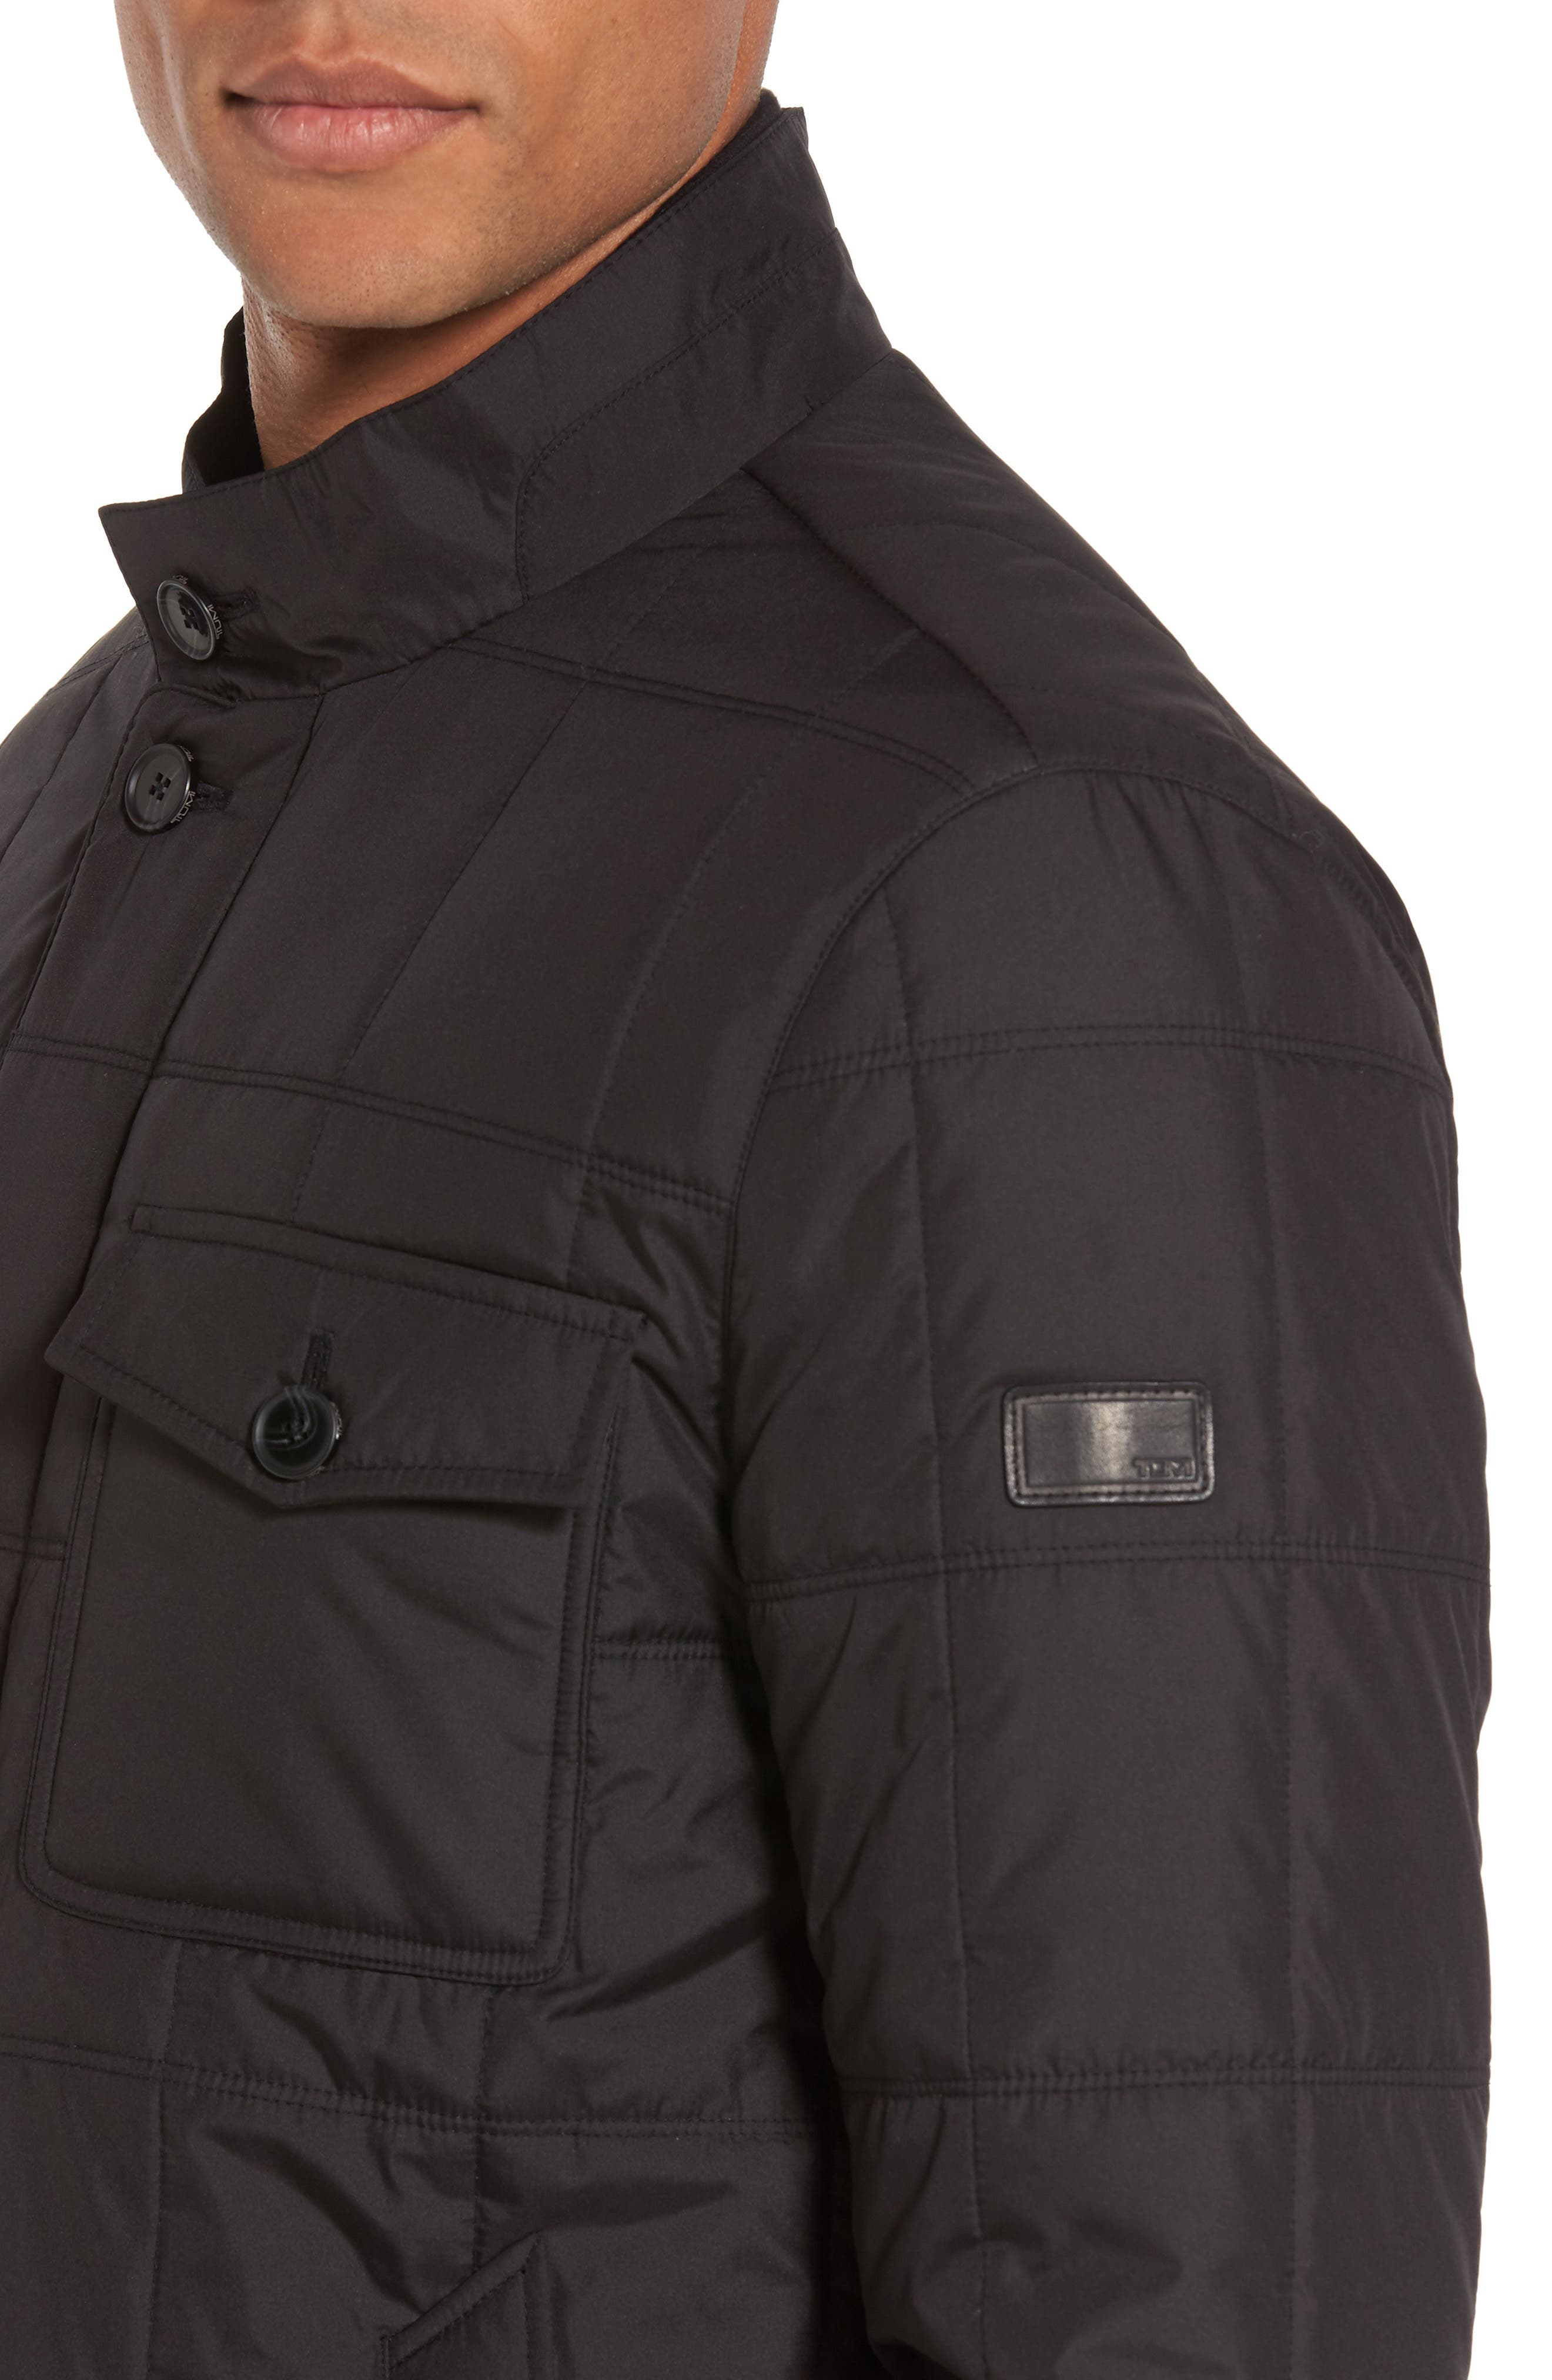 Regular Fit Quilted Jacket,                             Alternate thumbnail 4, color,                             001